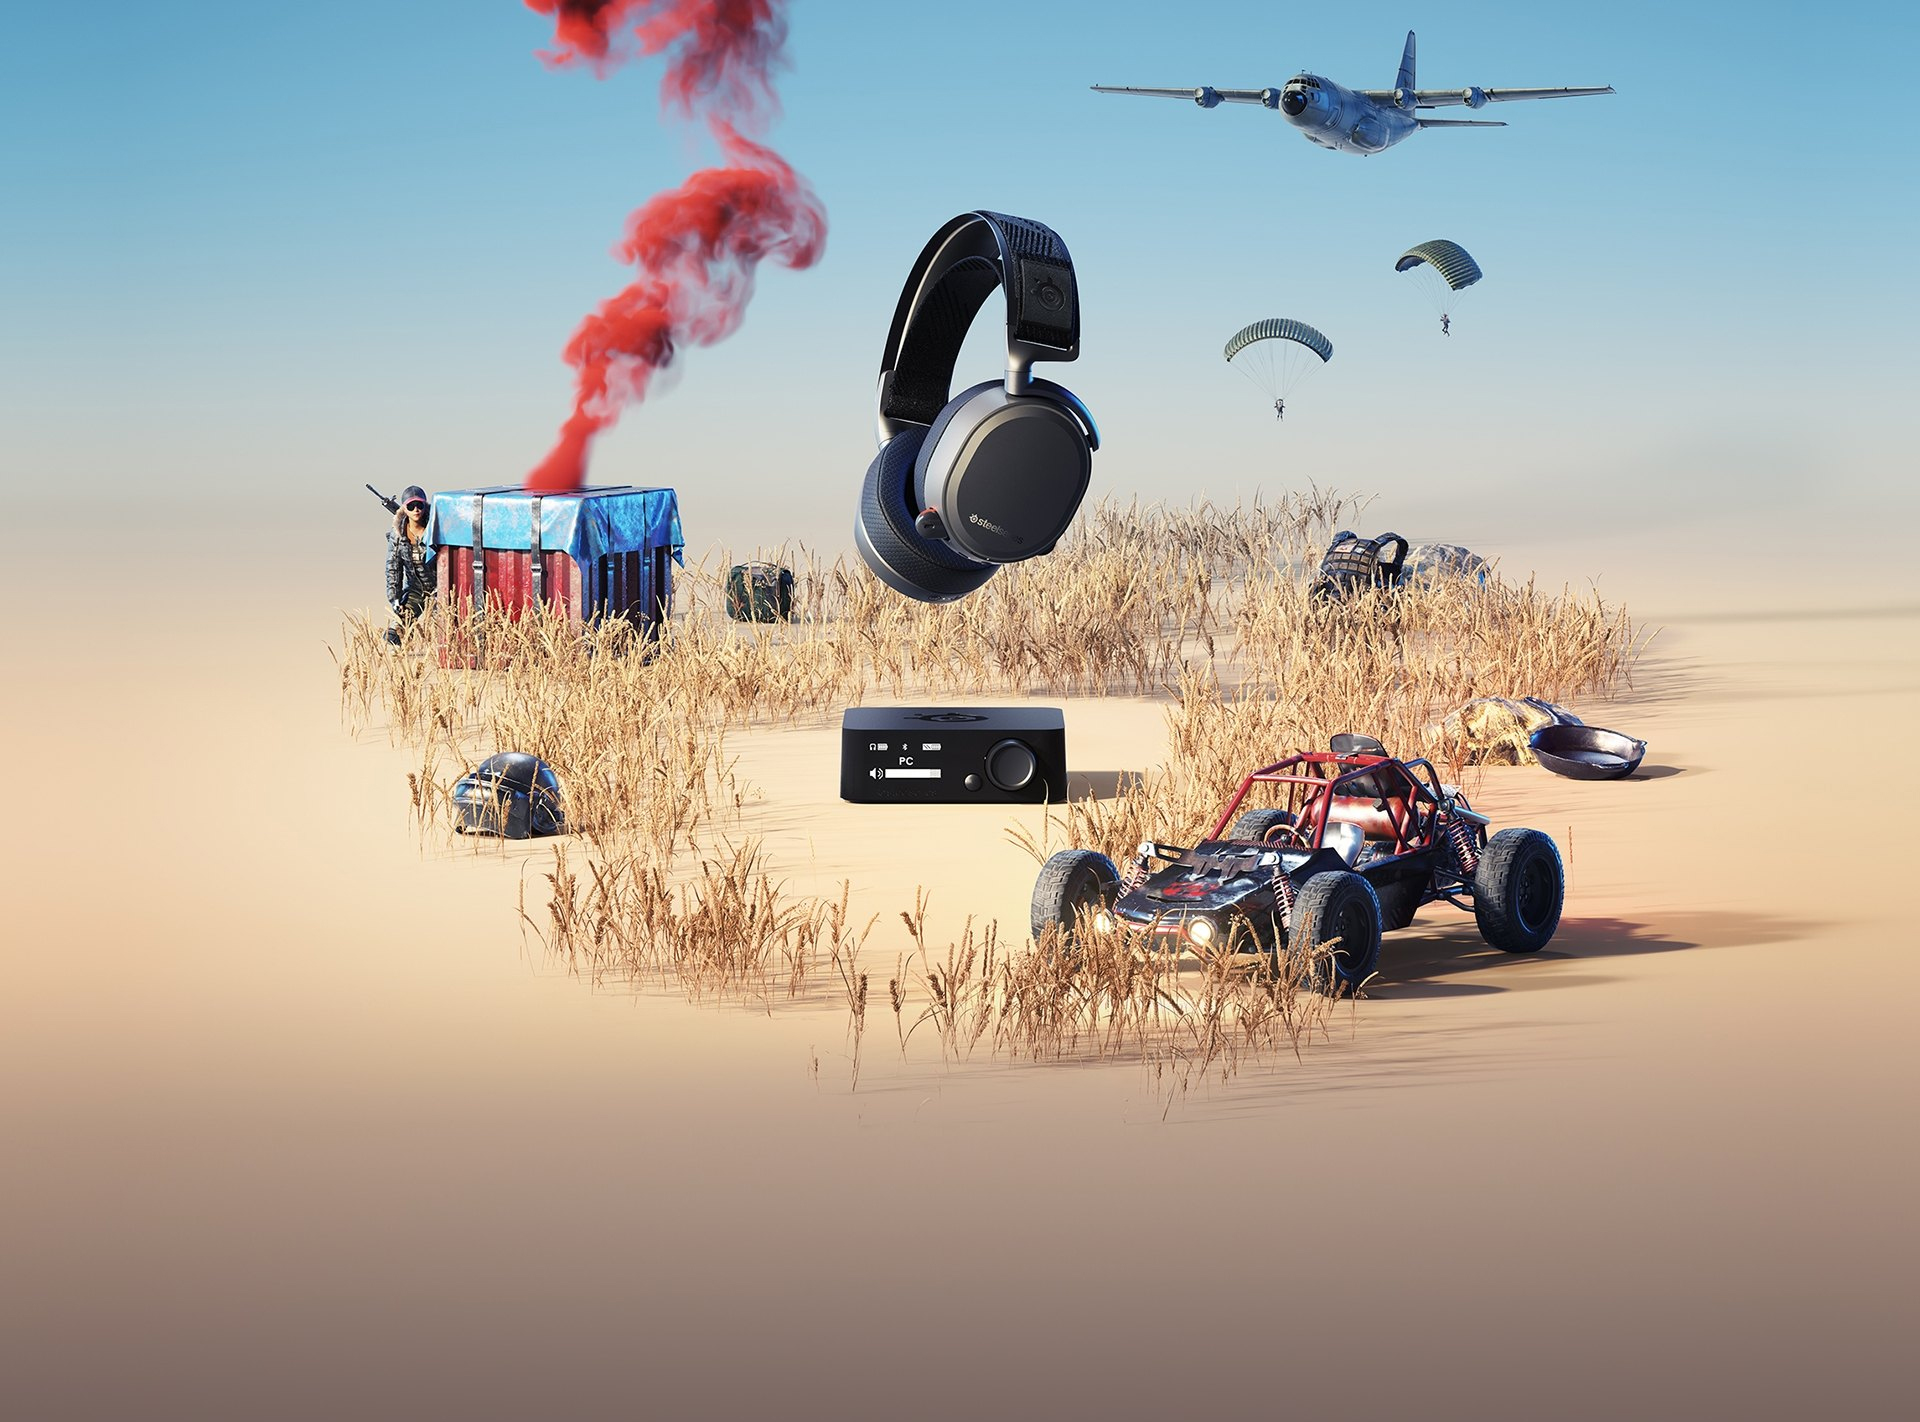 SteelSeries Acrtis Pro headset floating above its base station in a desert with the PlayerUnknown's Battleground desert with the level 3 helmet, frying pan, a player behind a supply drop, a four-wheel buggy and backpack. In the sky the plane flys to the left with two players parachuting down